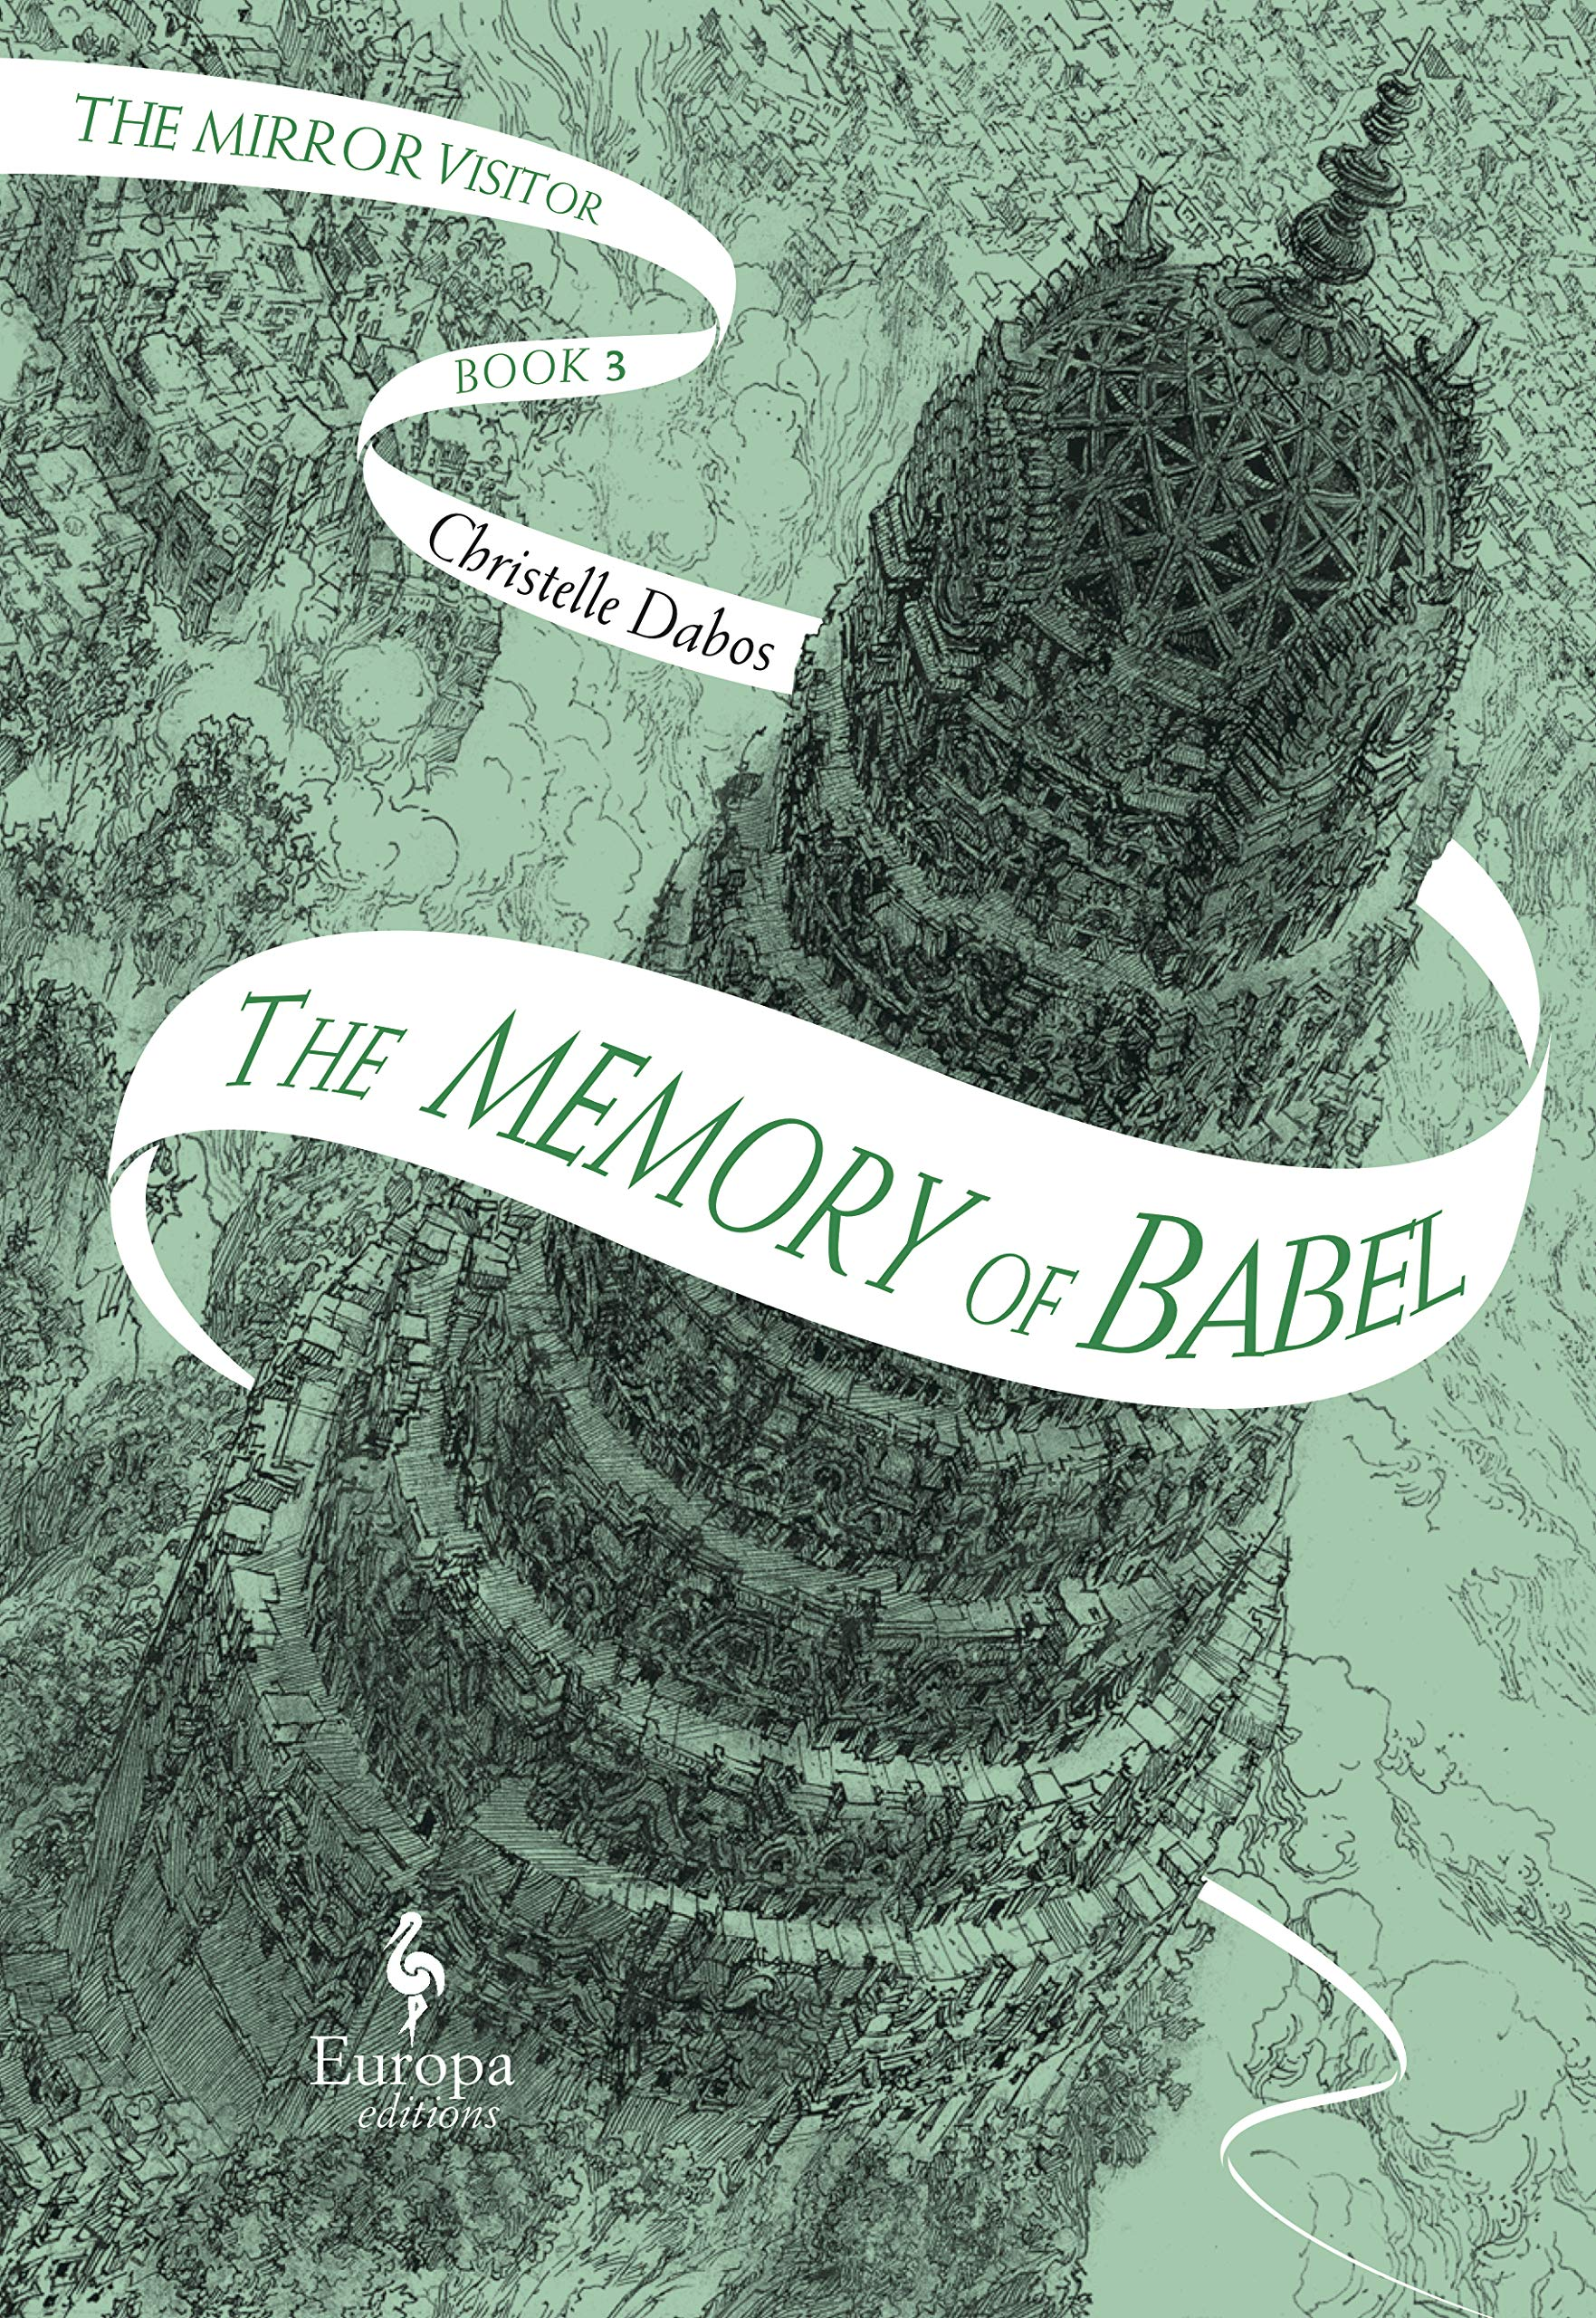 Amazon.com: The Memory of Babel: Book Three of The Mirror Visitor ...